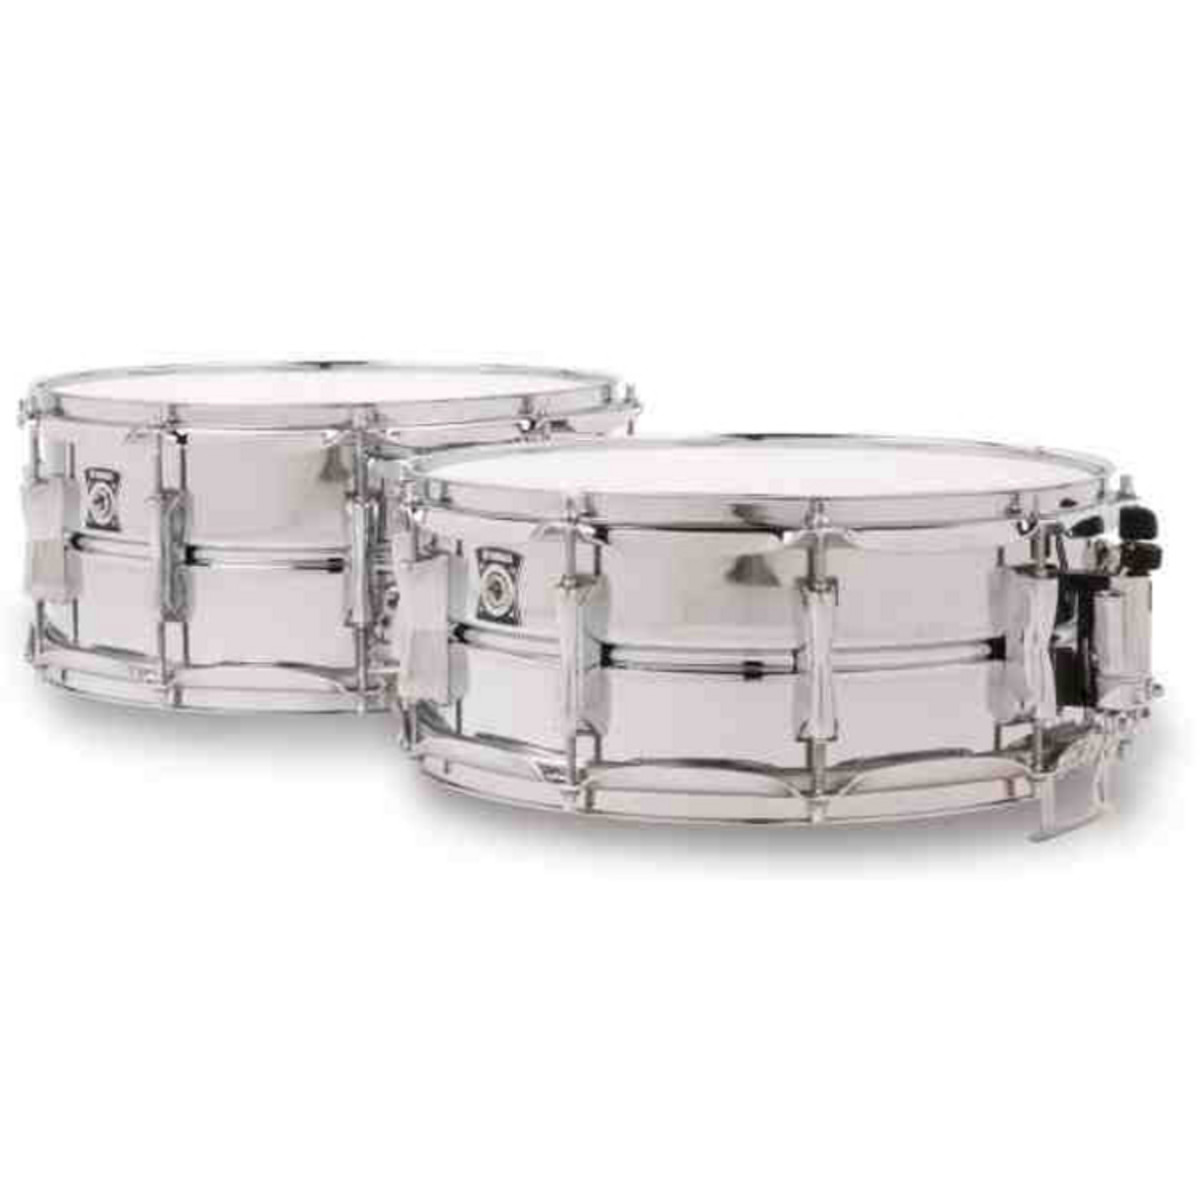 yamaha sd266a 14 x 6 5 stage custom snare box opened at. Black Bedroom Furniture Sets. Home Design Ideas